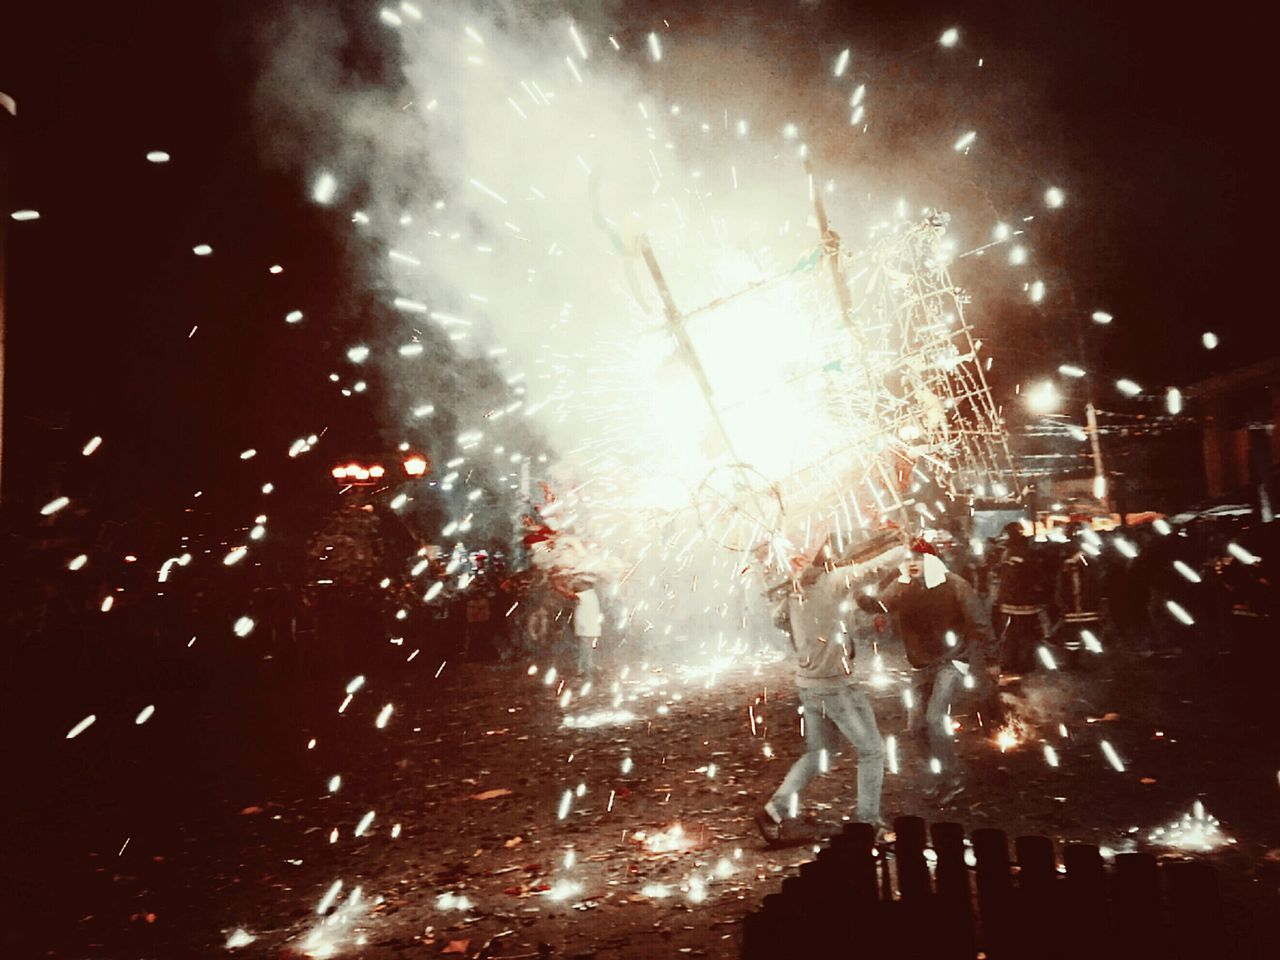 Mexico Celebration Traditional Culture Toritospirotecnicos Smoke Human Representation Traditions Traditional Costume HuaweiP9 Pyrotechnics Colorful Night Nice Shot